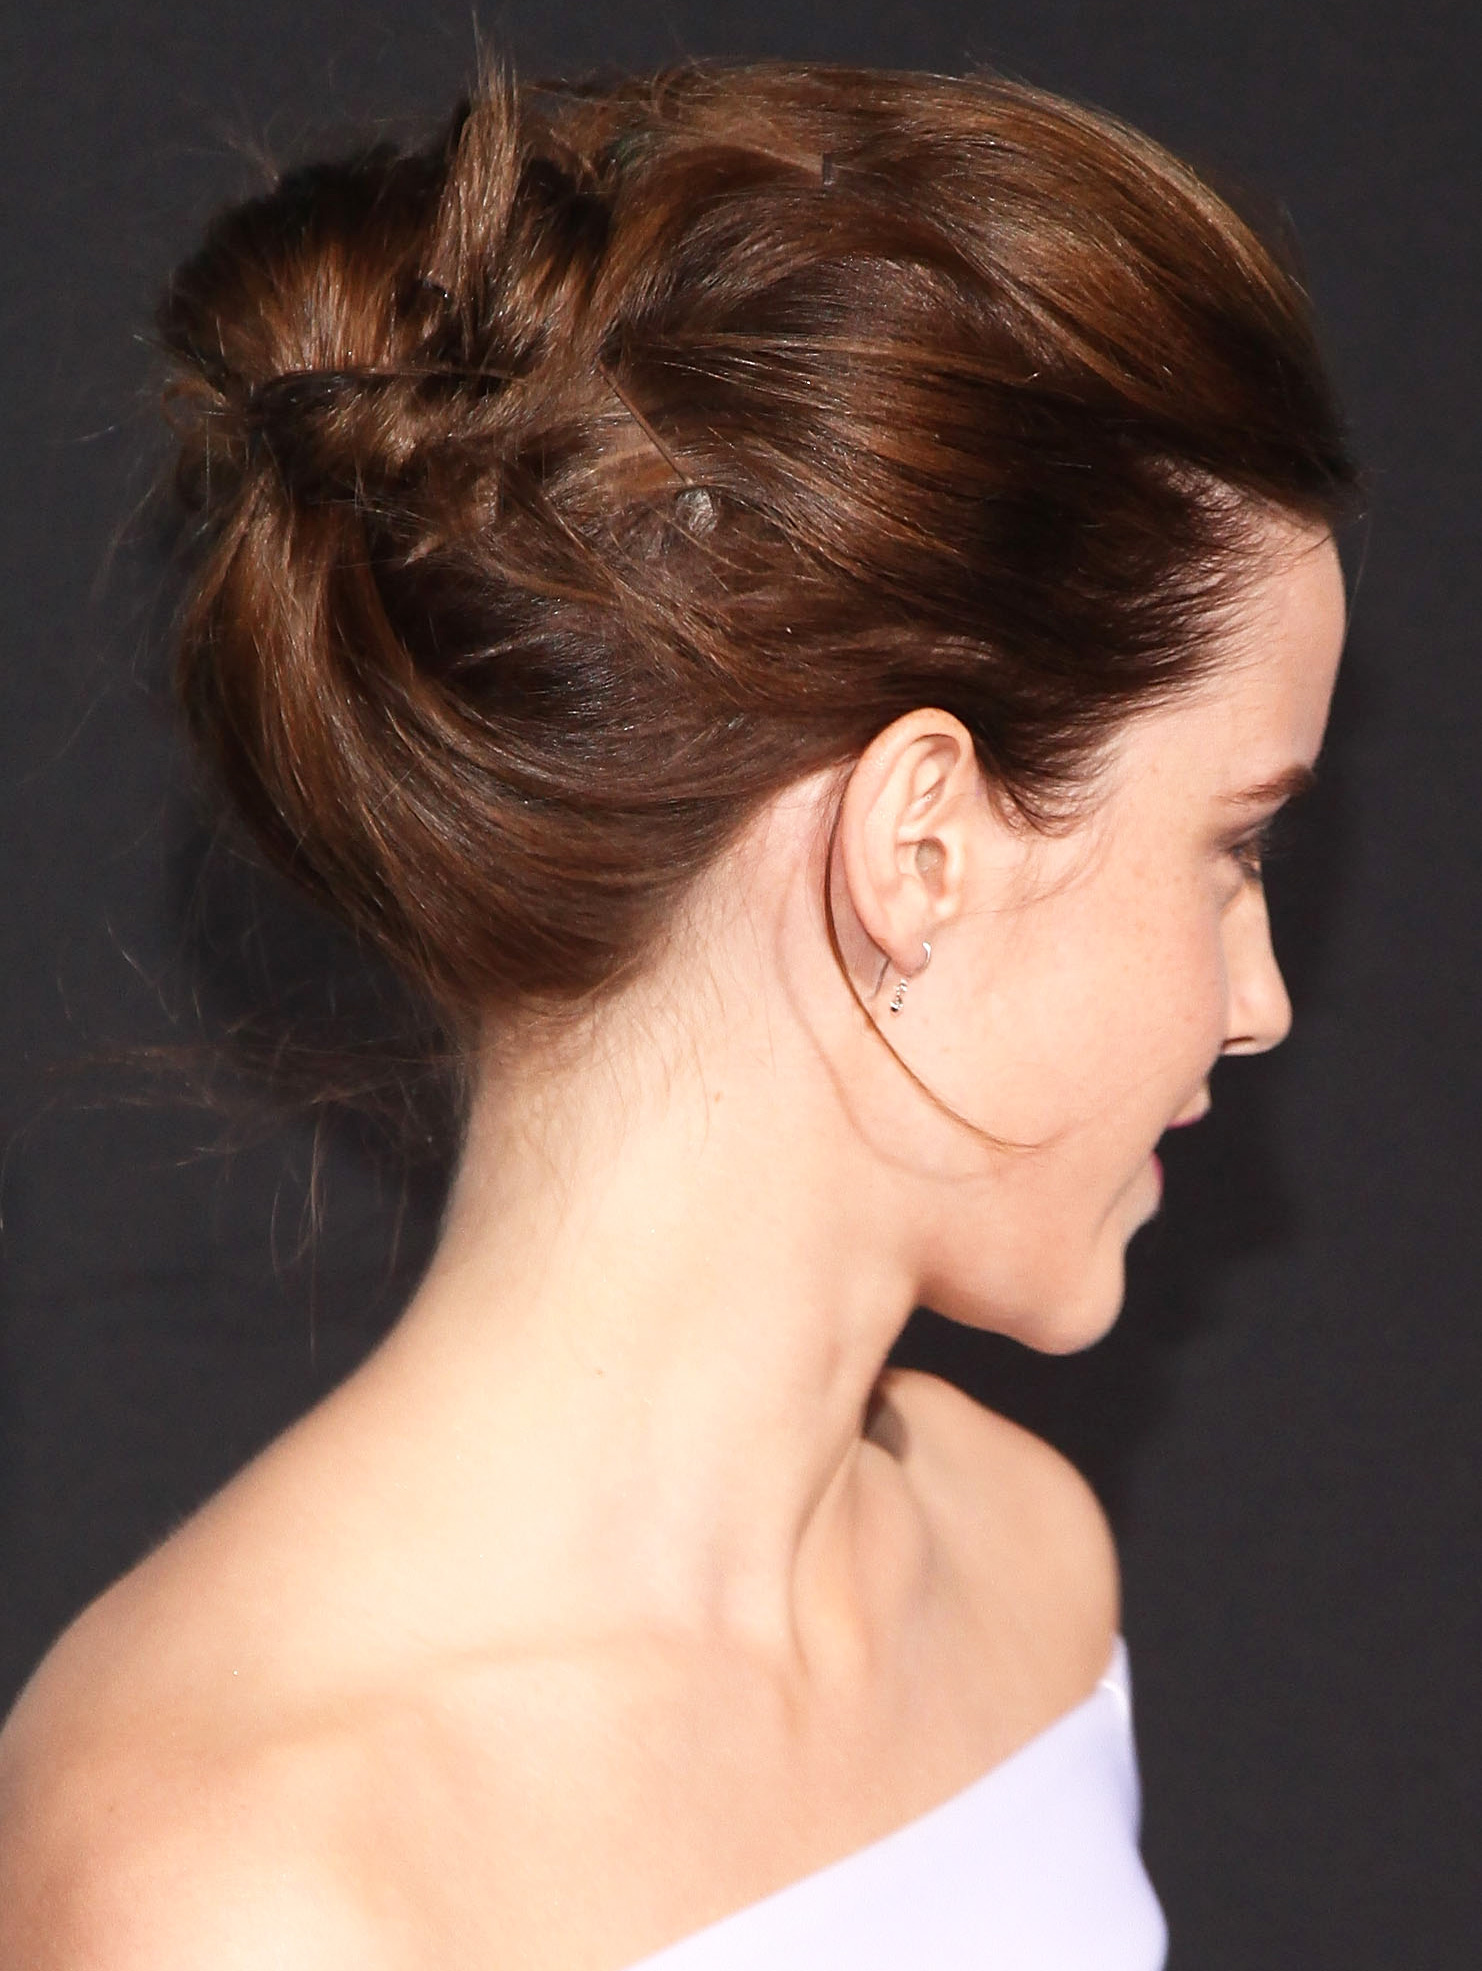 From the back, you can see that Emma's hair was twisted and pinned in lots of directions for a more interesting style.